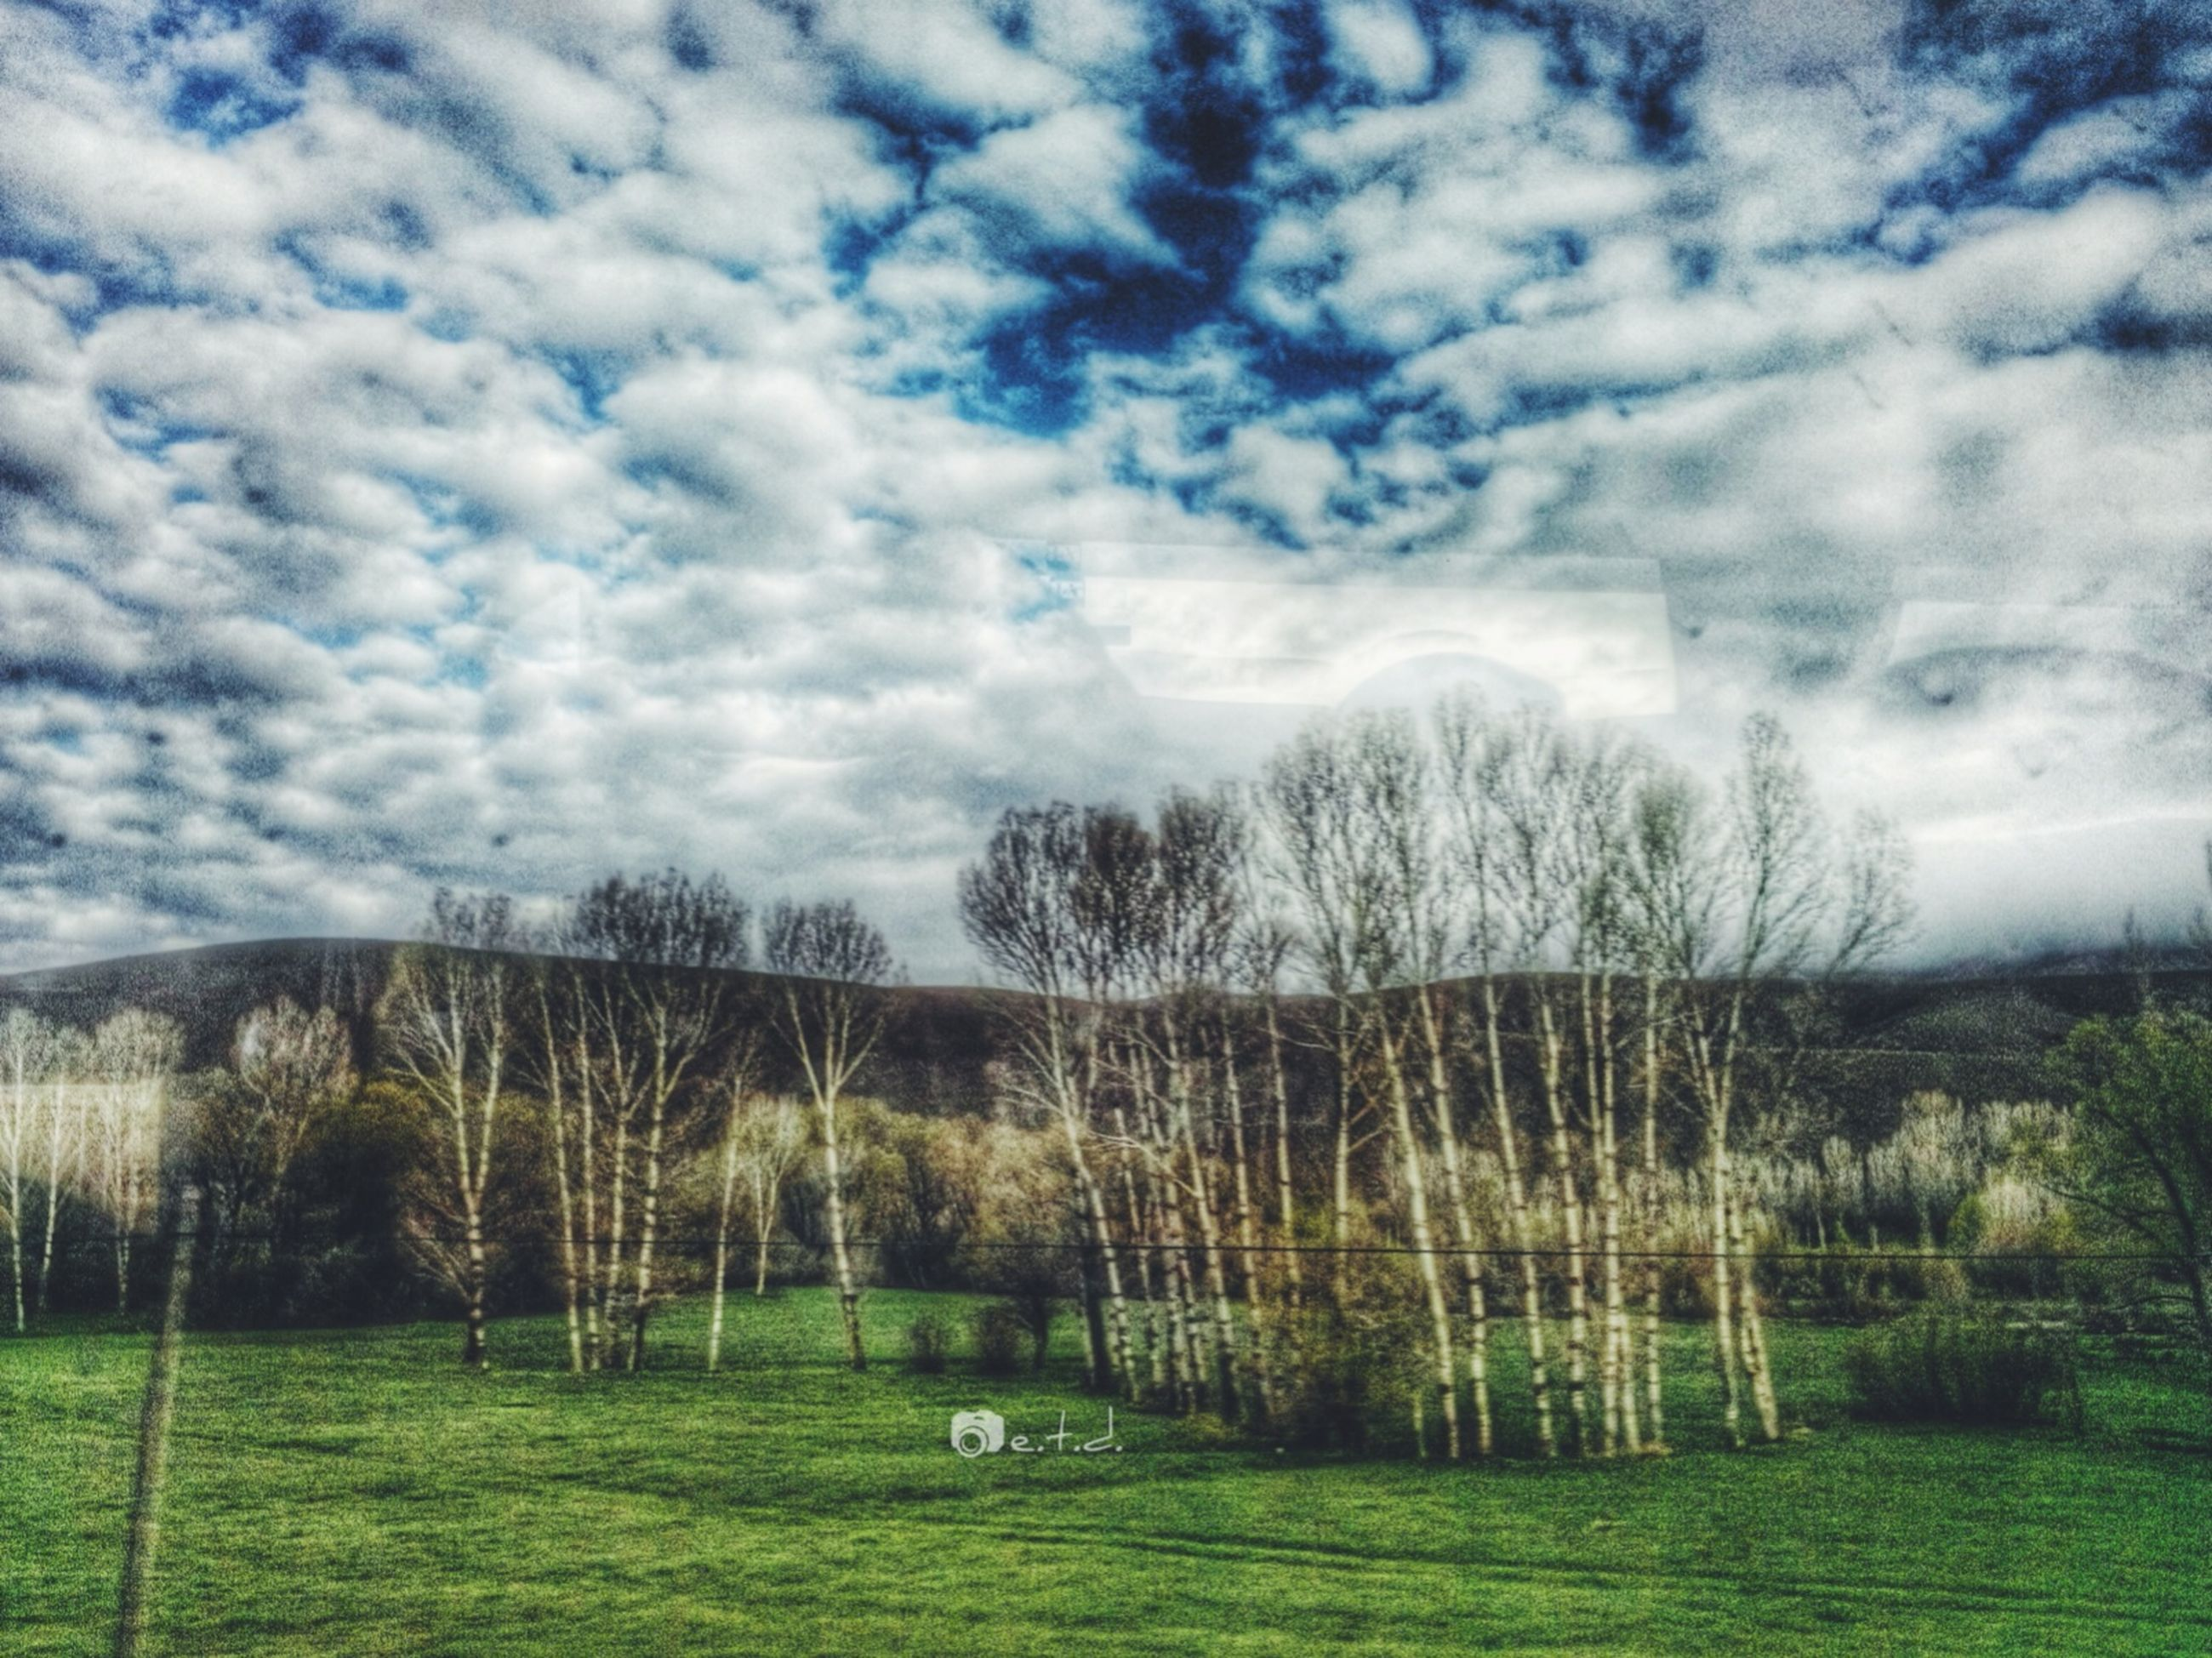 grass, sky, landscape, cloud - sky, field, tranquil scene, tranquility, tree, scenics, grassy, beauty in nature, cloudy, nature, green color, cloud, growth, rural scene, non-urban scene, day, idyllic